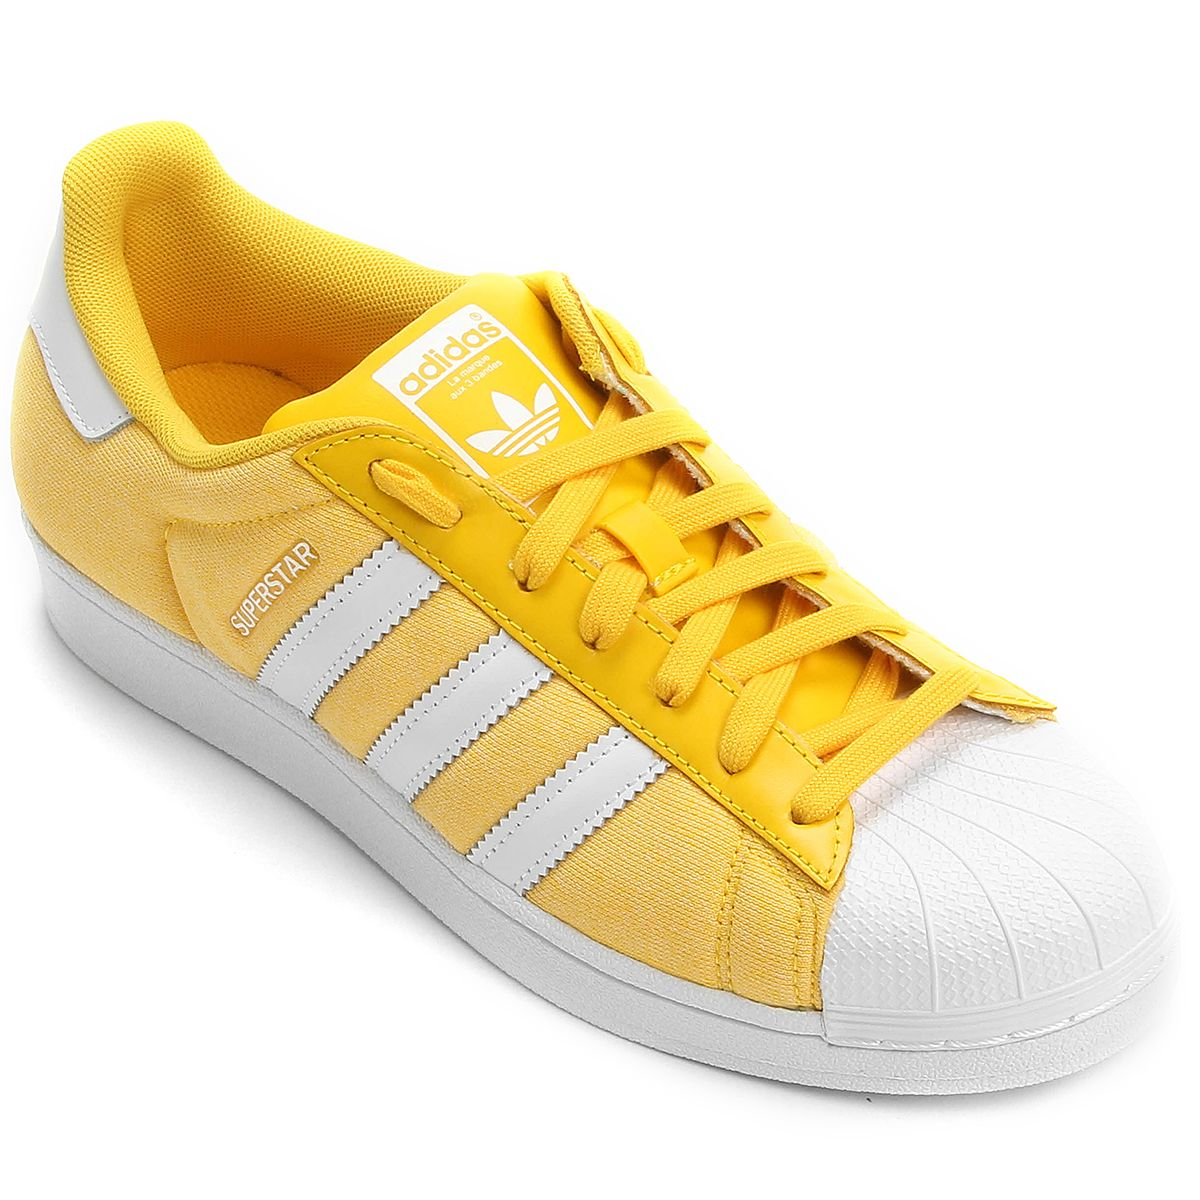 b2be9972cc2 Wishing for a size 7! Adidas Superstar G Pack